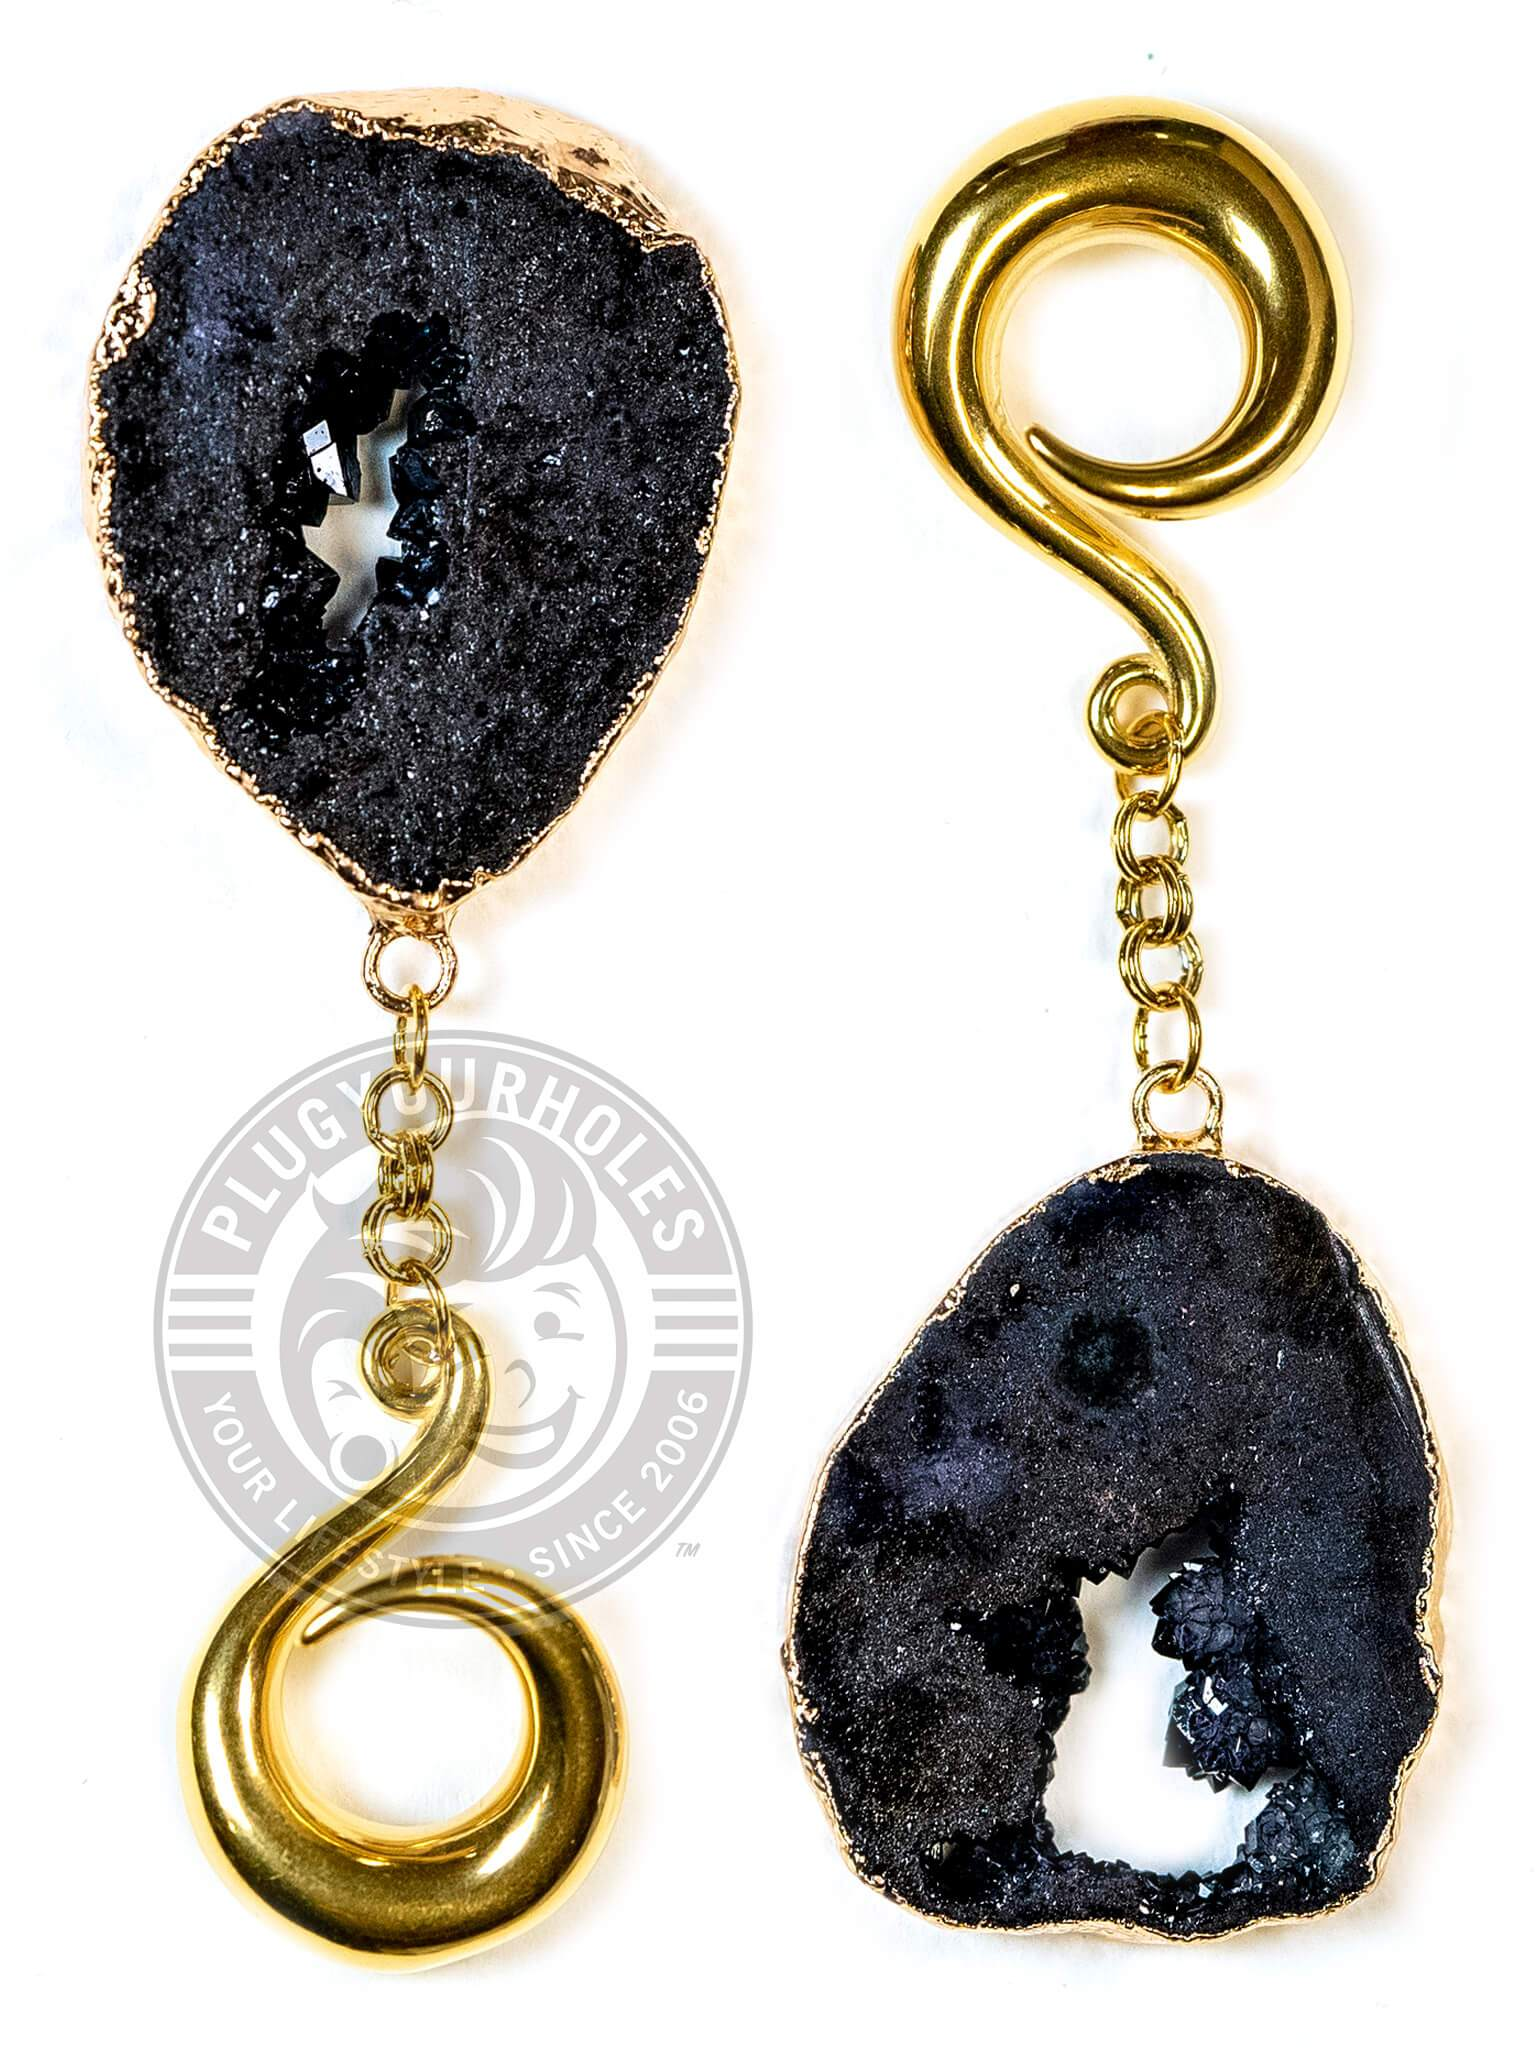 Black Crystalized Geode Slice Gold Curled Hook Hangers